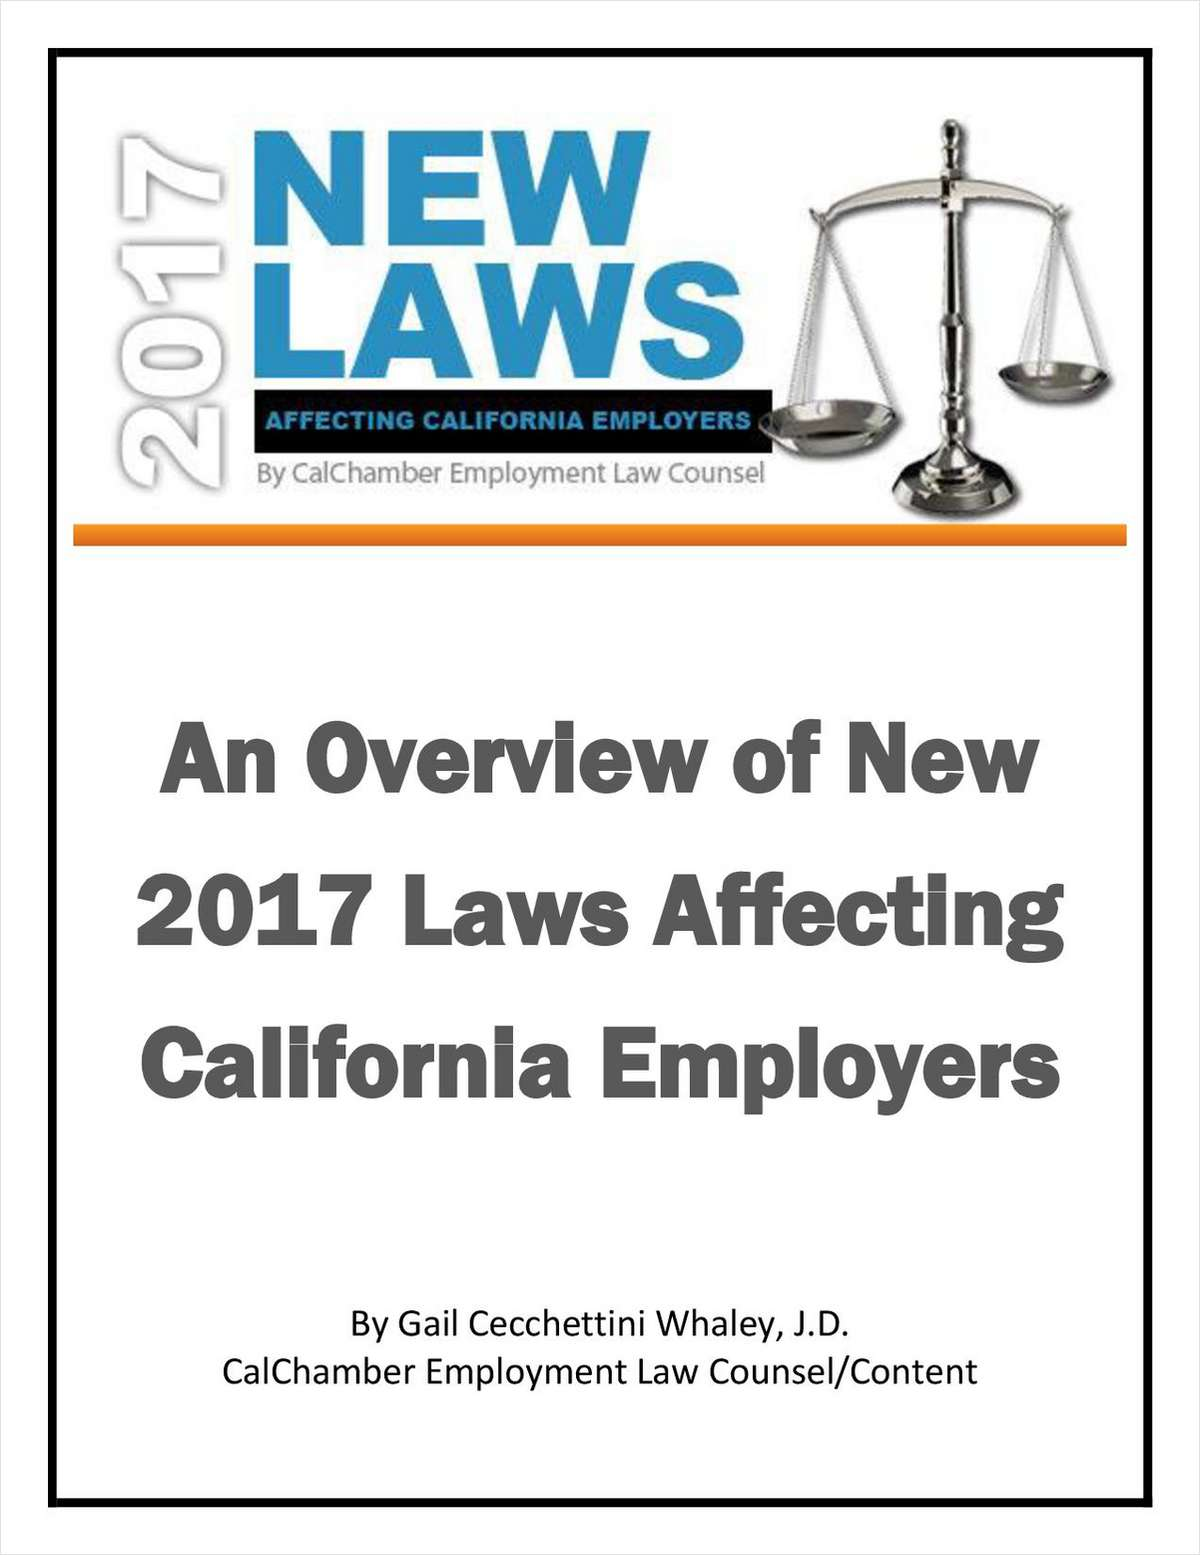 New 2017 Laws Affecting California Employers